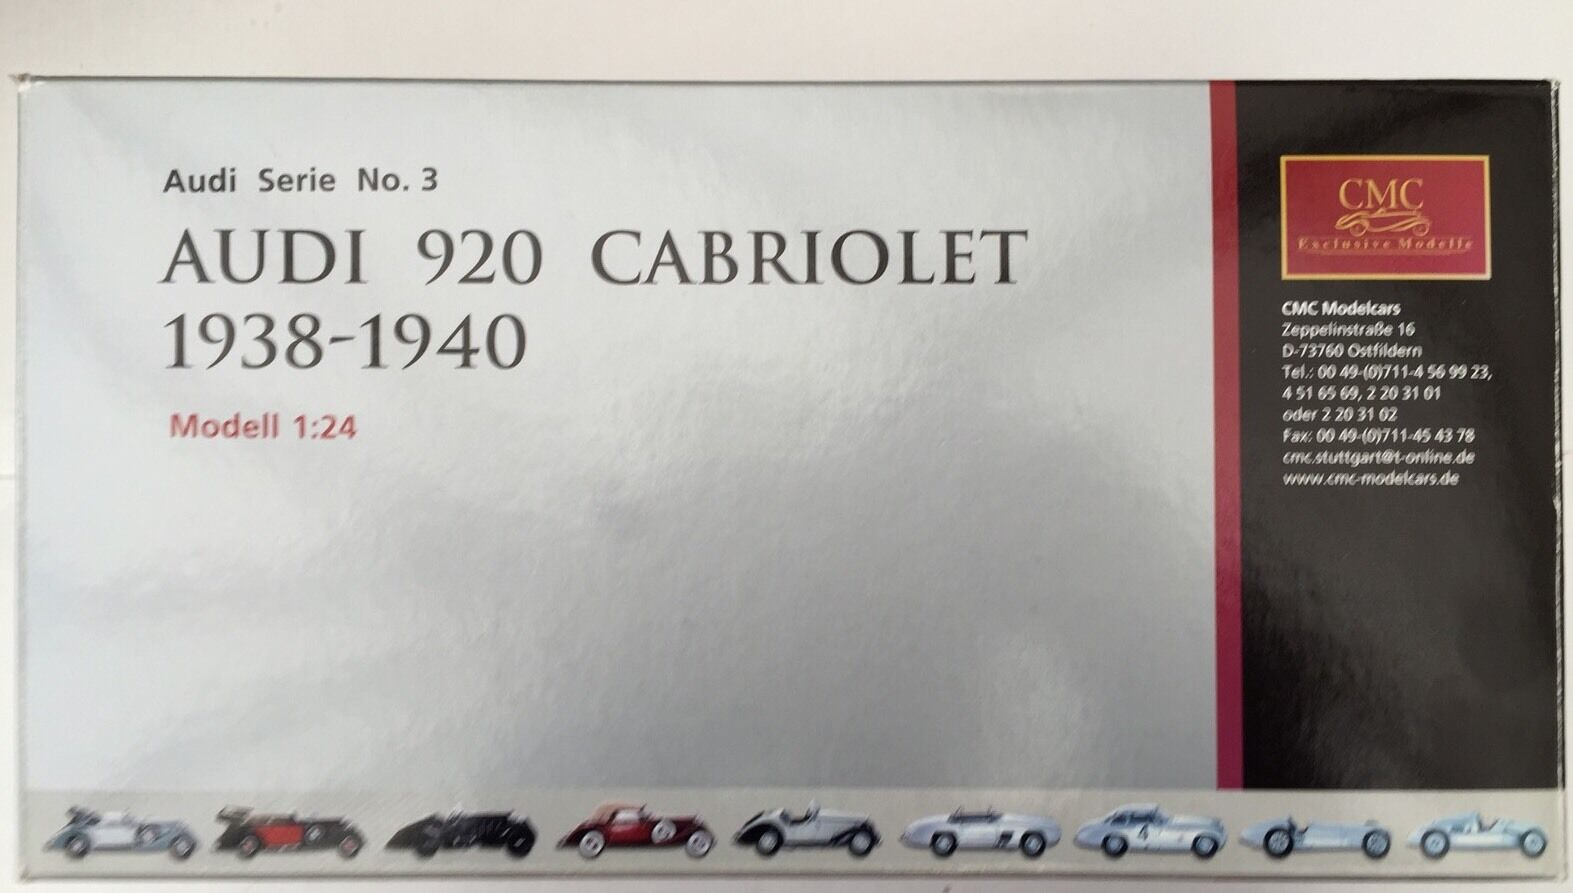 CMC Audi 920, Cabriolet 1938-1940 M-032 (Top Up)